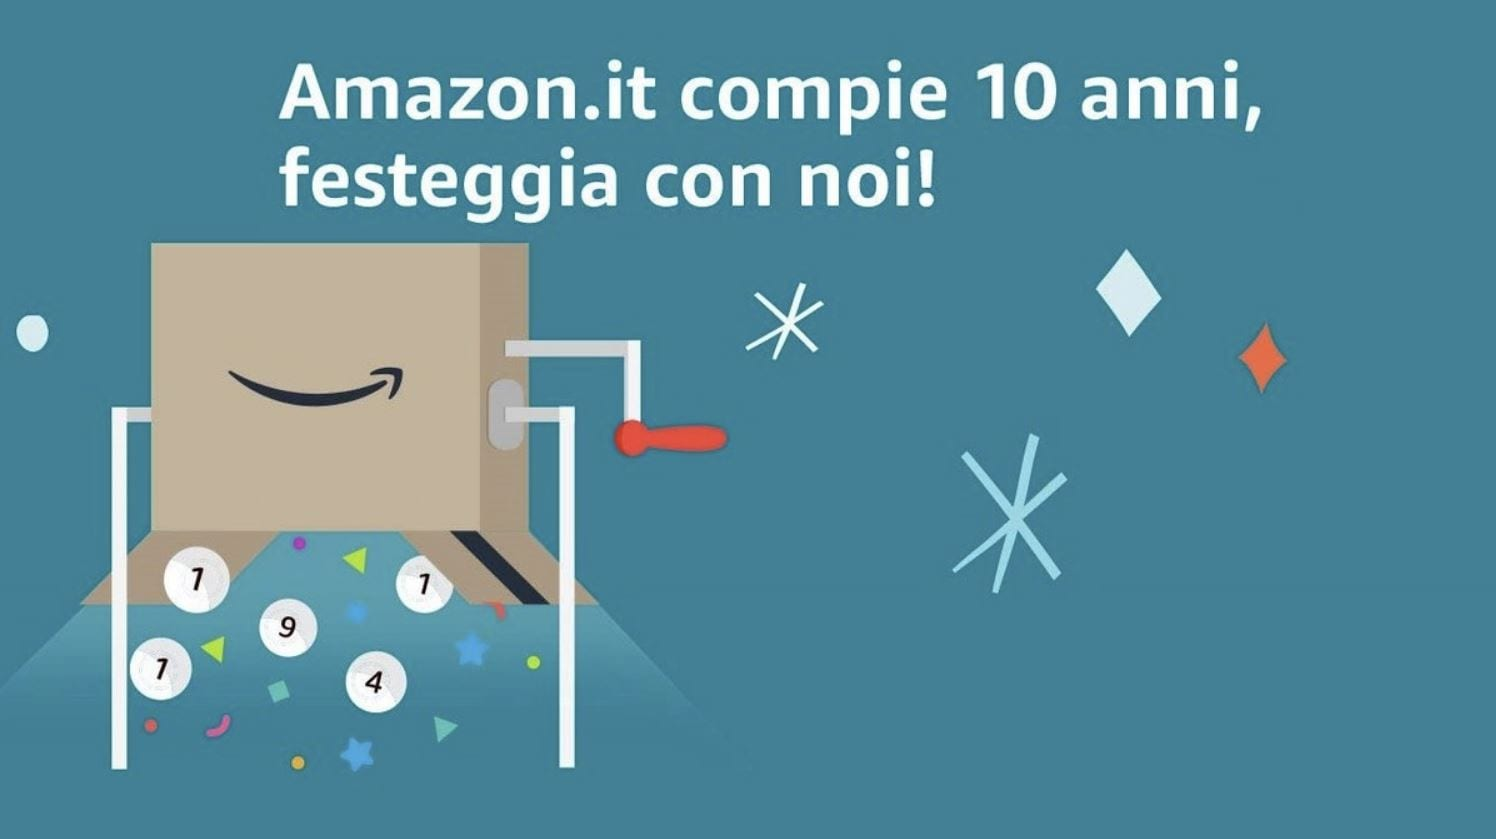 Amazon.it compie 10 anni e mette in palio 30.000€ in buoni regalo